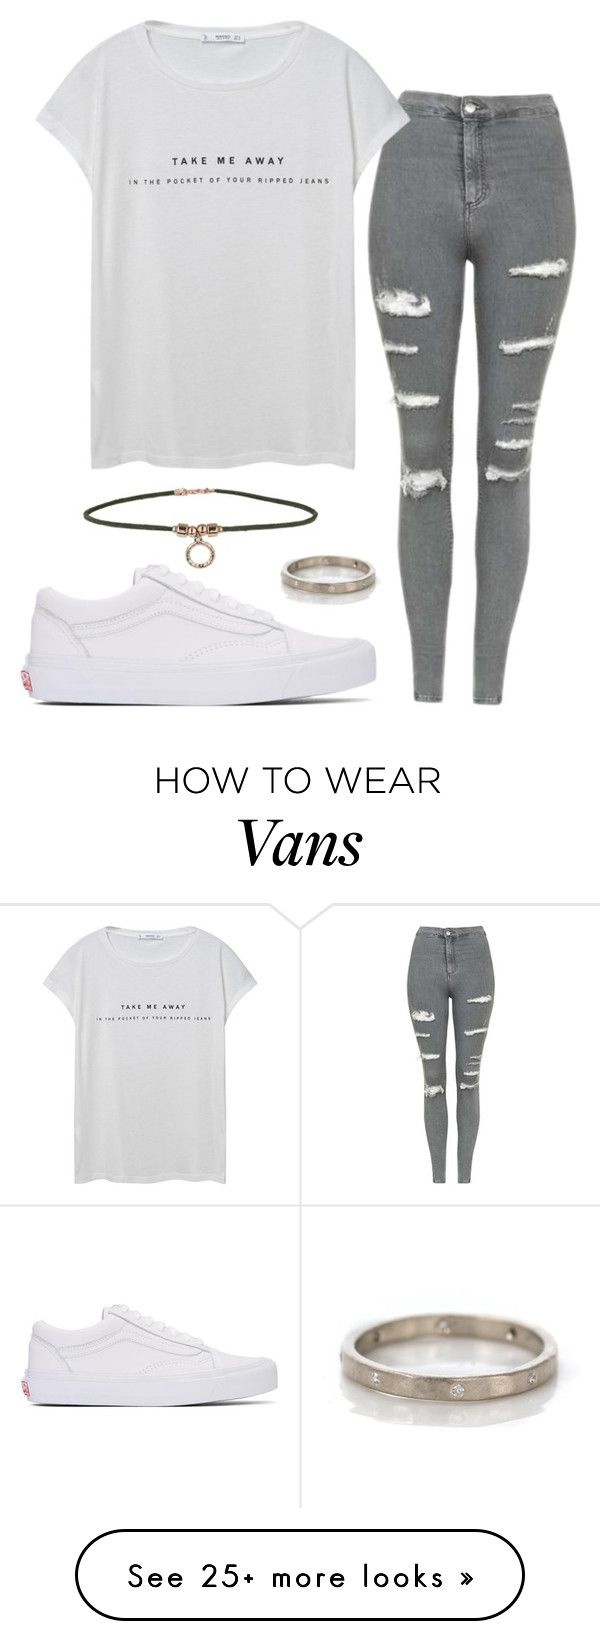 """#No name"" by eemaj on Polyvore featuring Topshop, MANGO, Vans and Miss Selfridge"